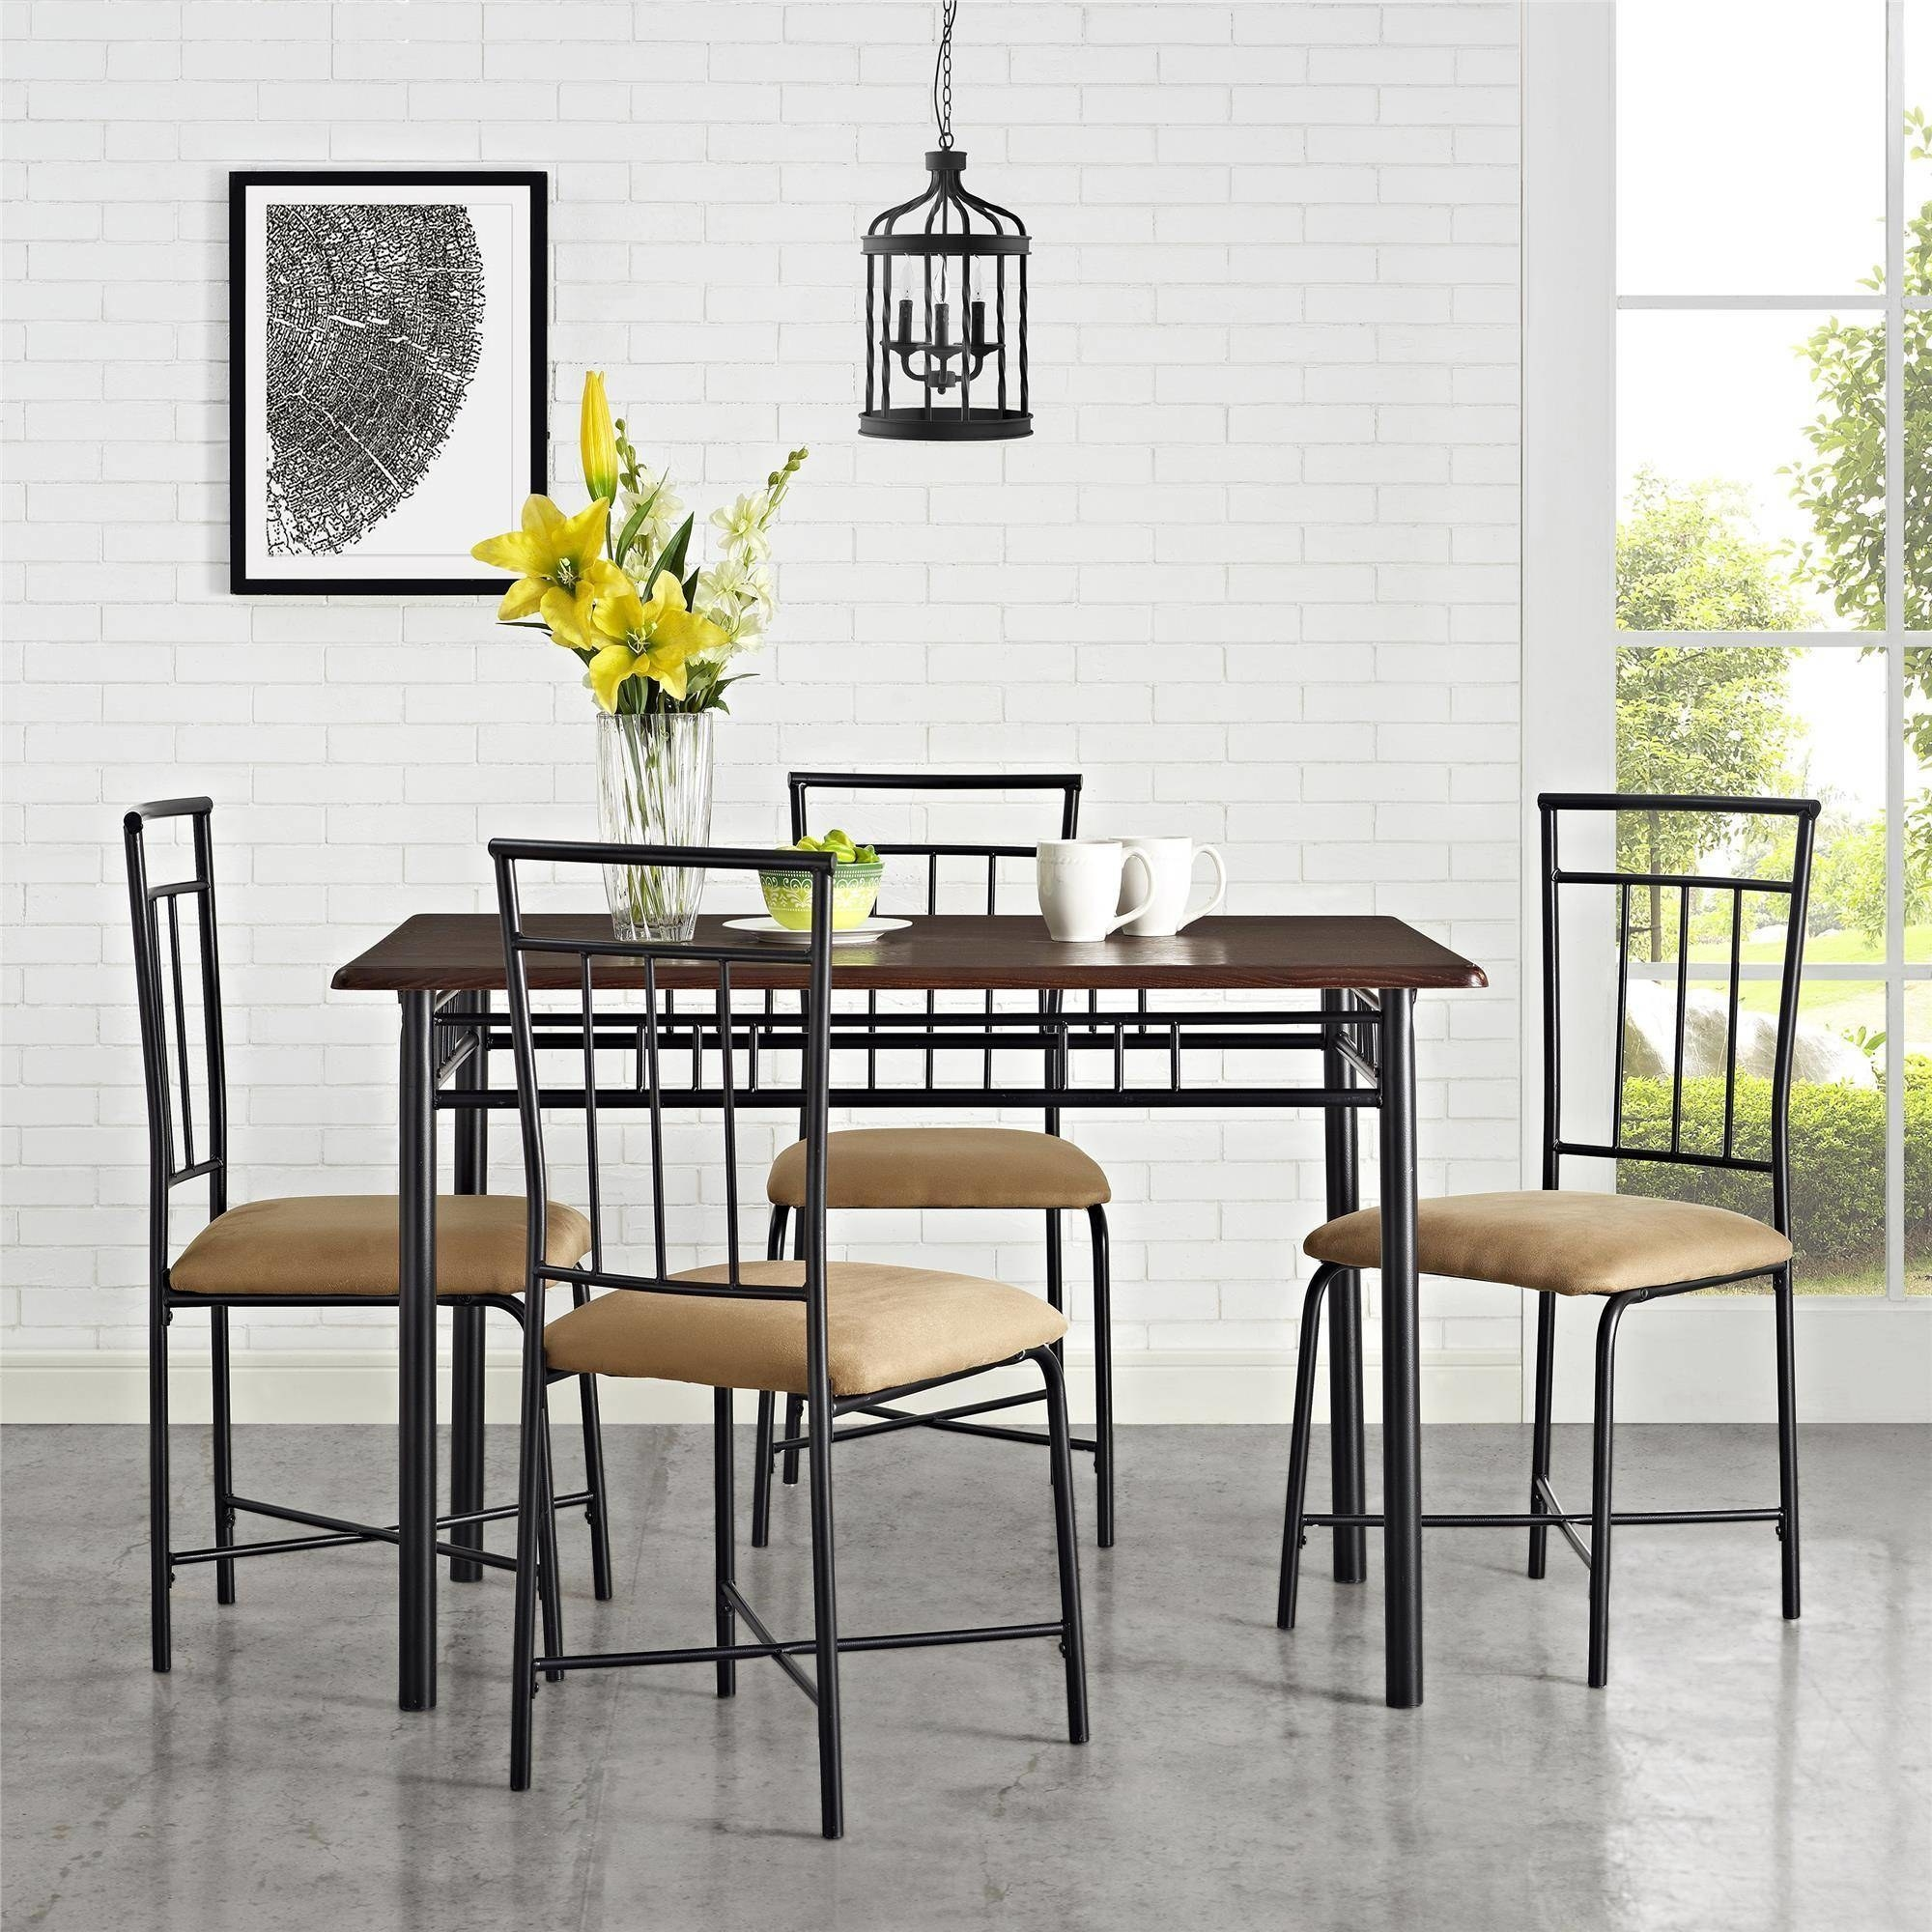 Five-piece dining table and chairs set